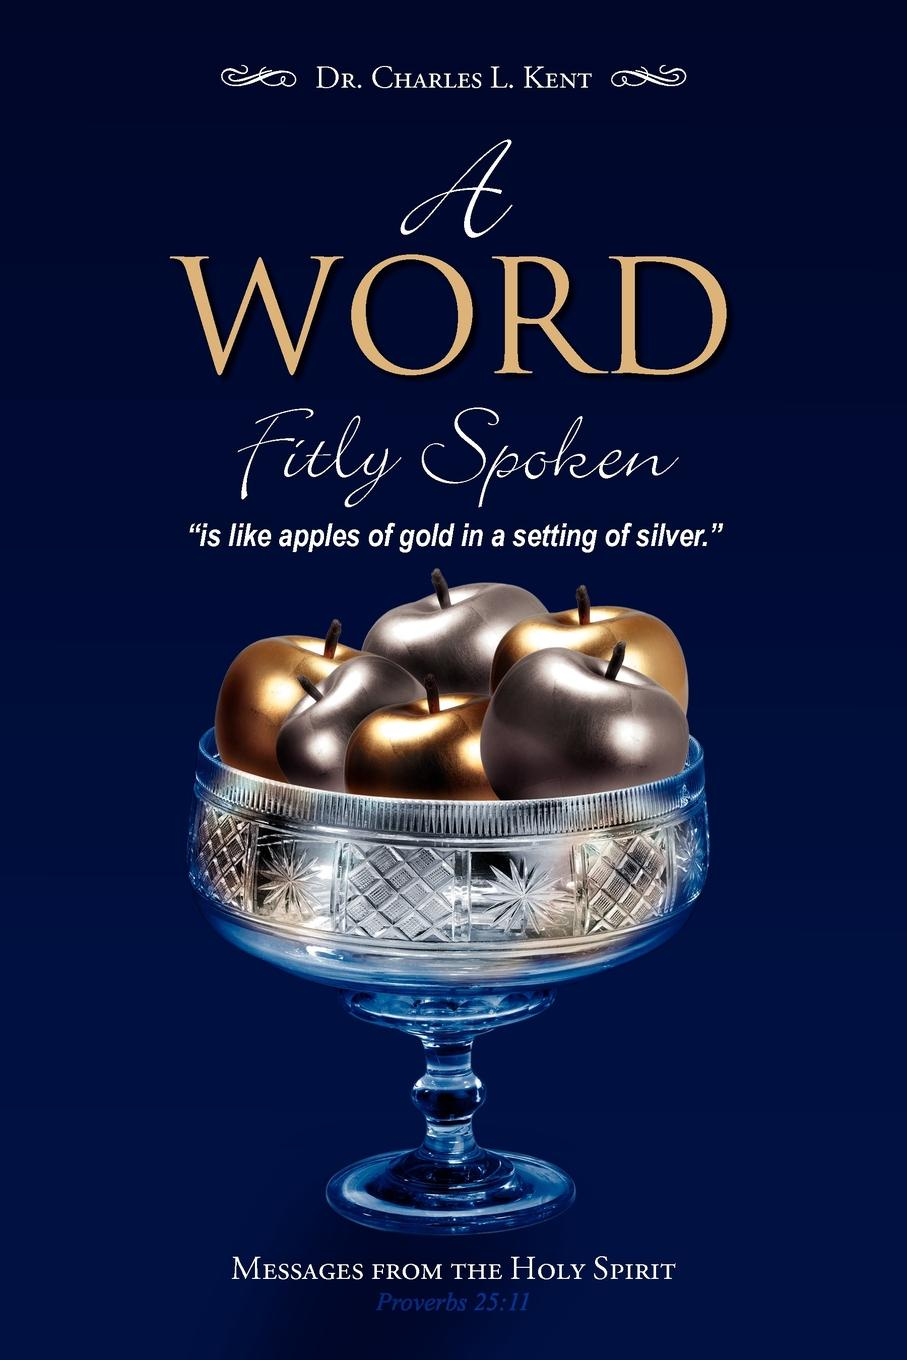 Charles L. Kent, Dr Kent A Word Fitly Spoken. Messages from the Holy Spirit